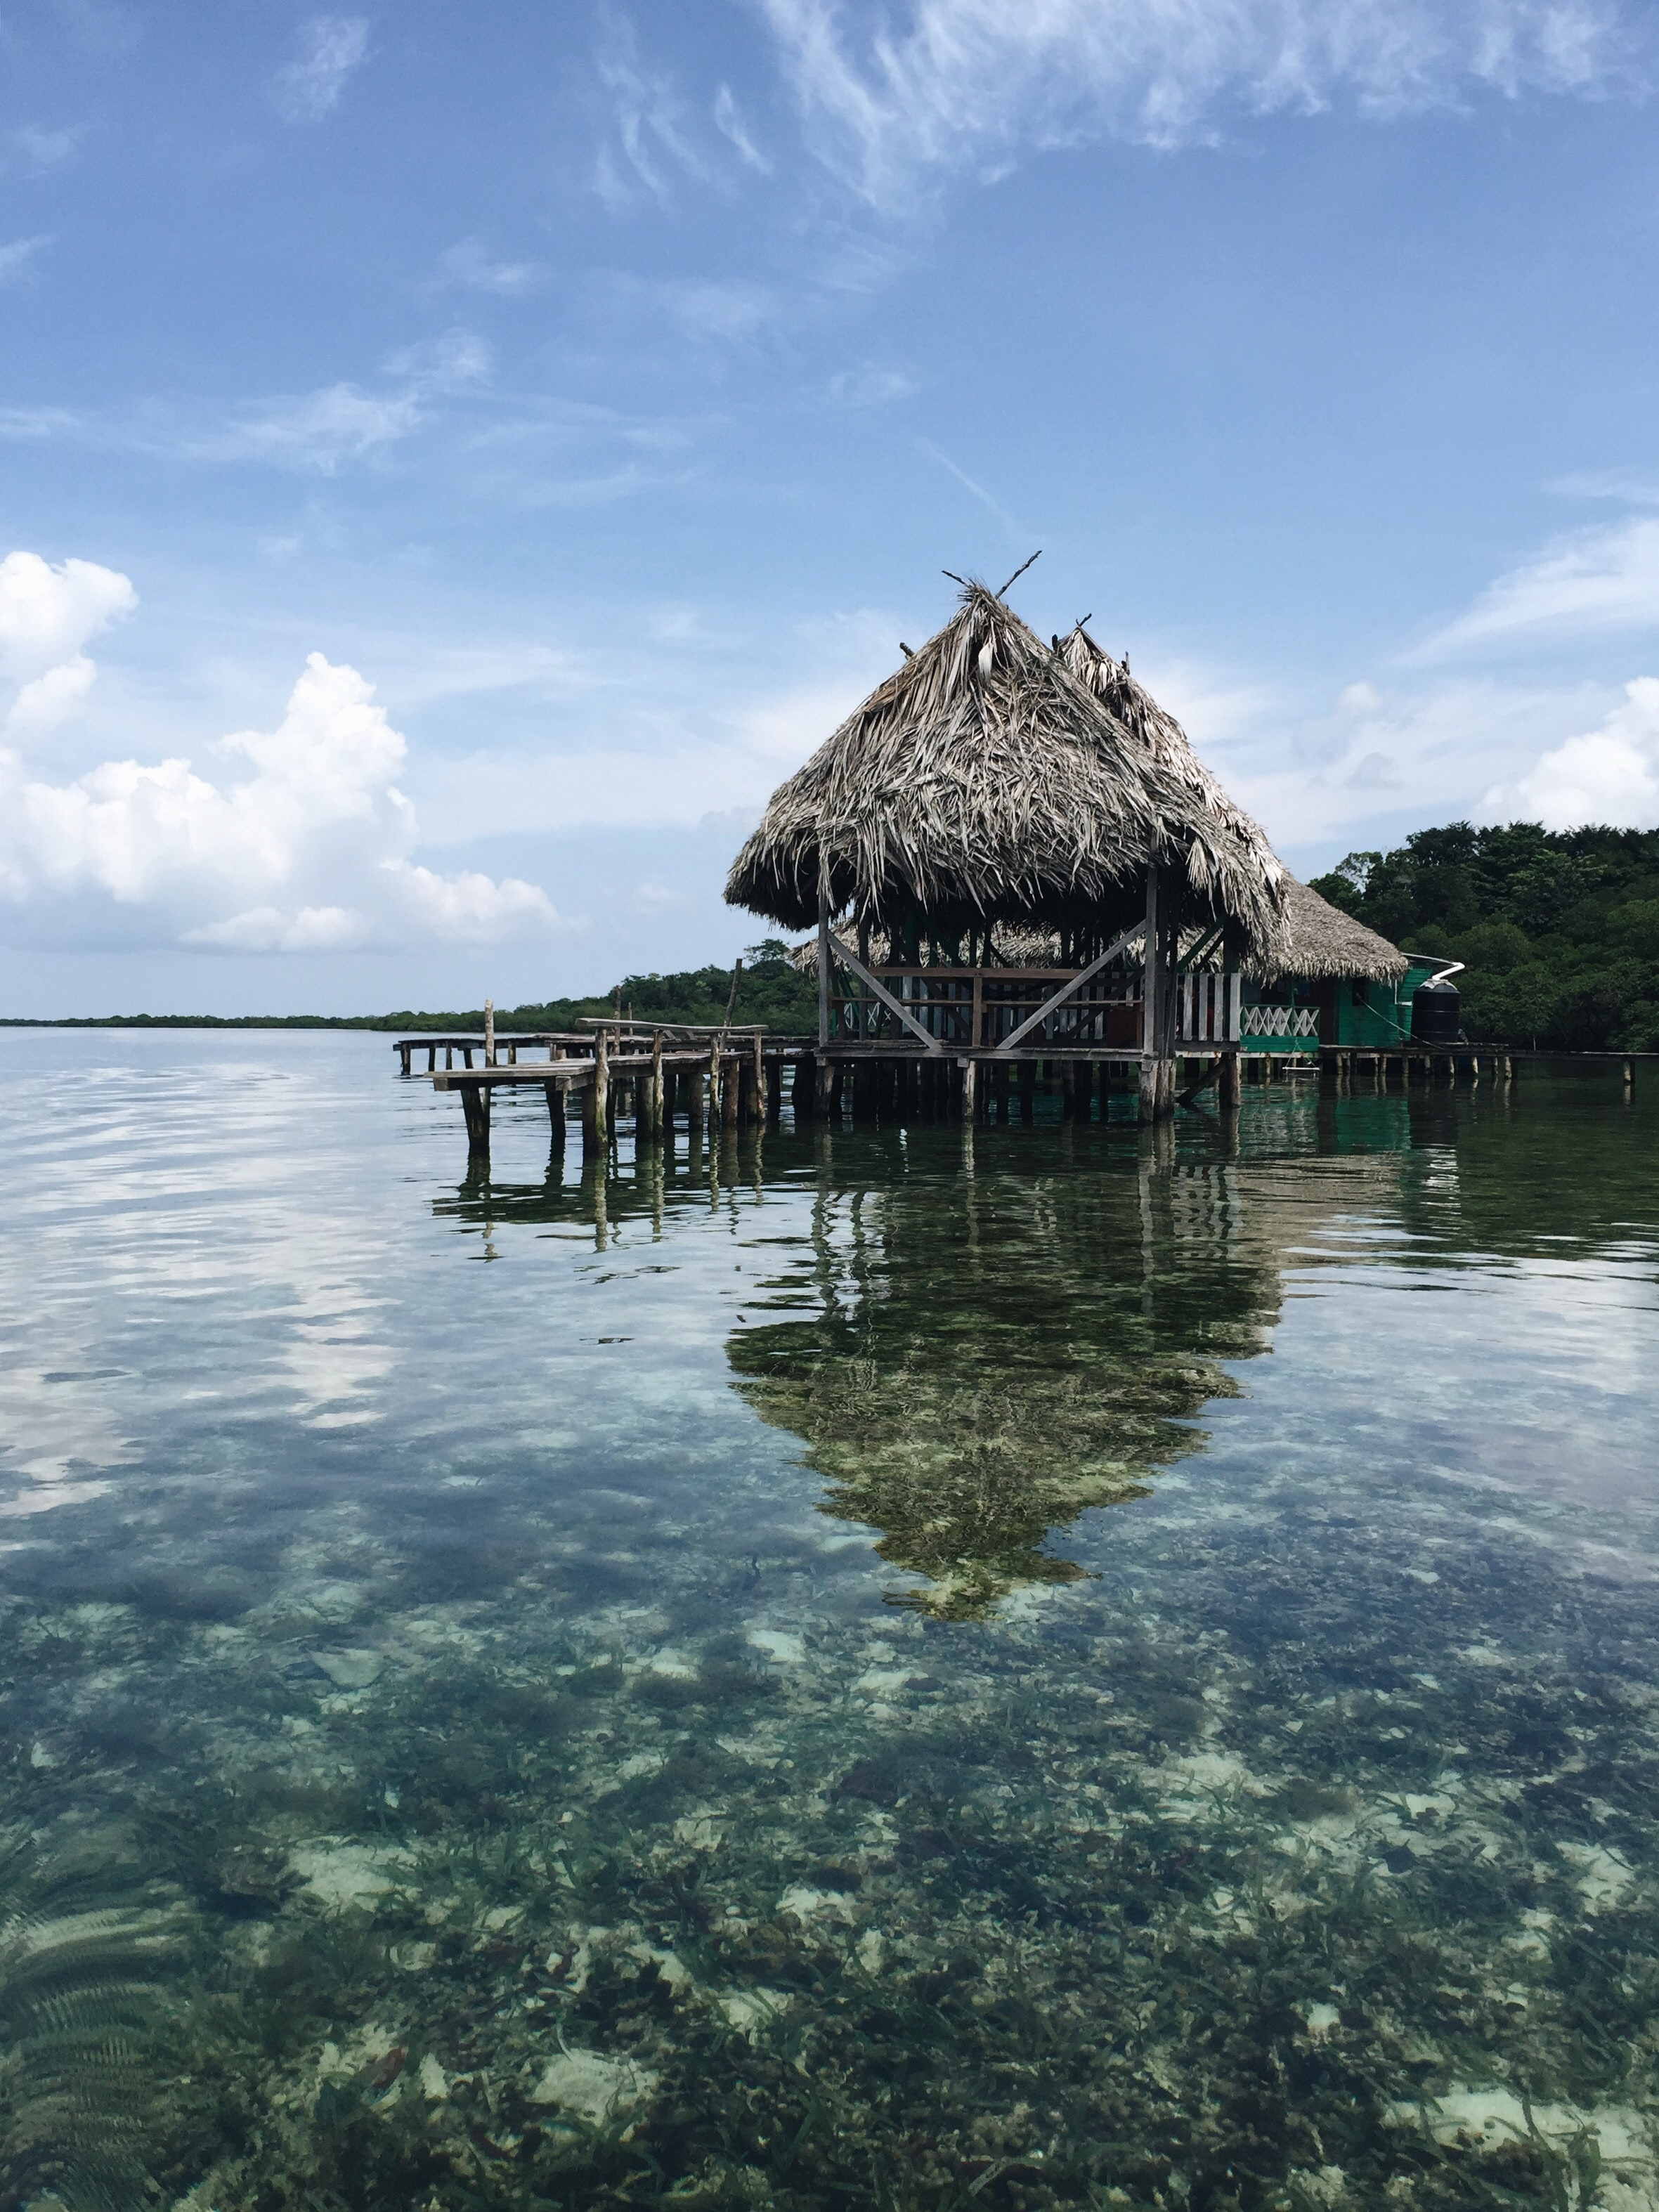 A boathouse by the clear ocean water